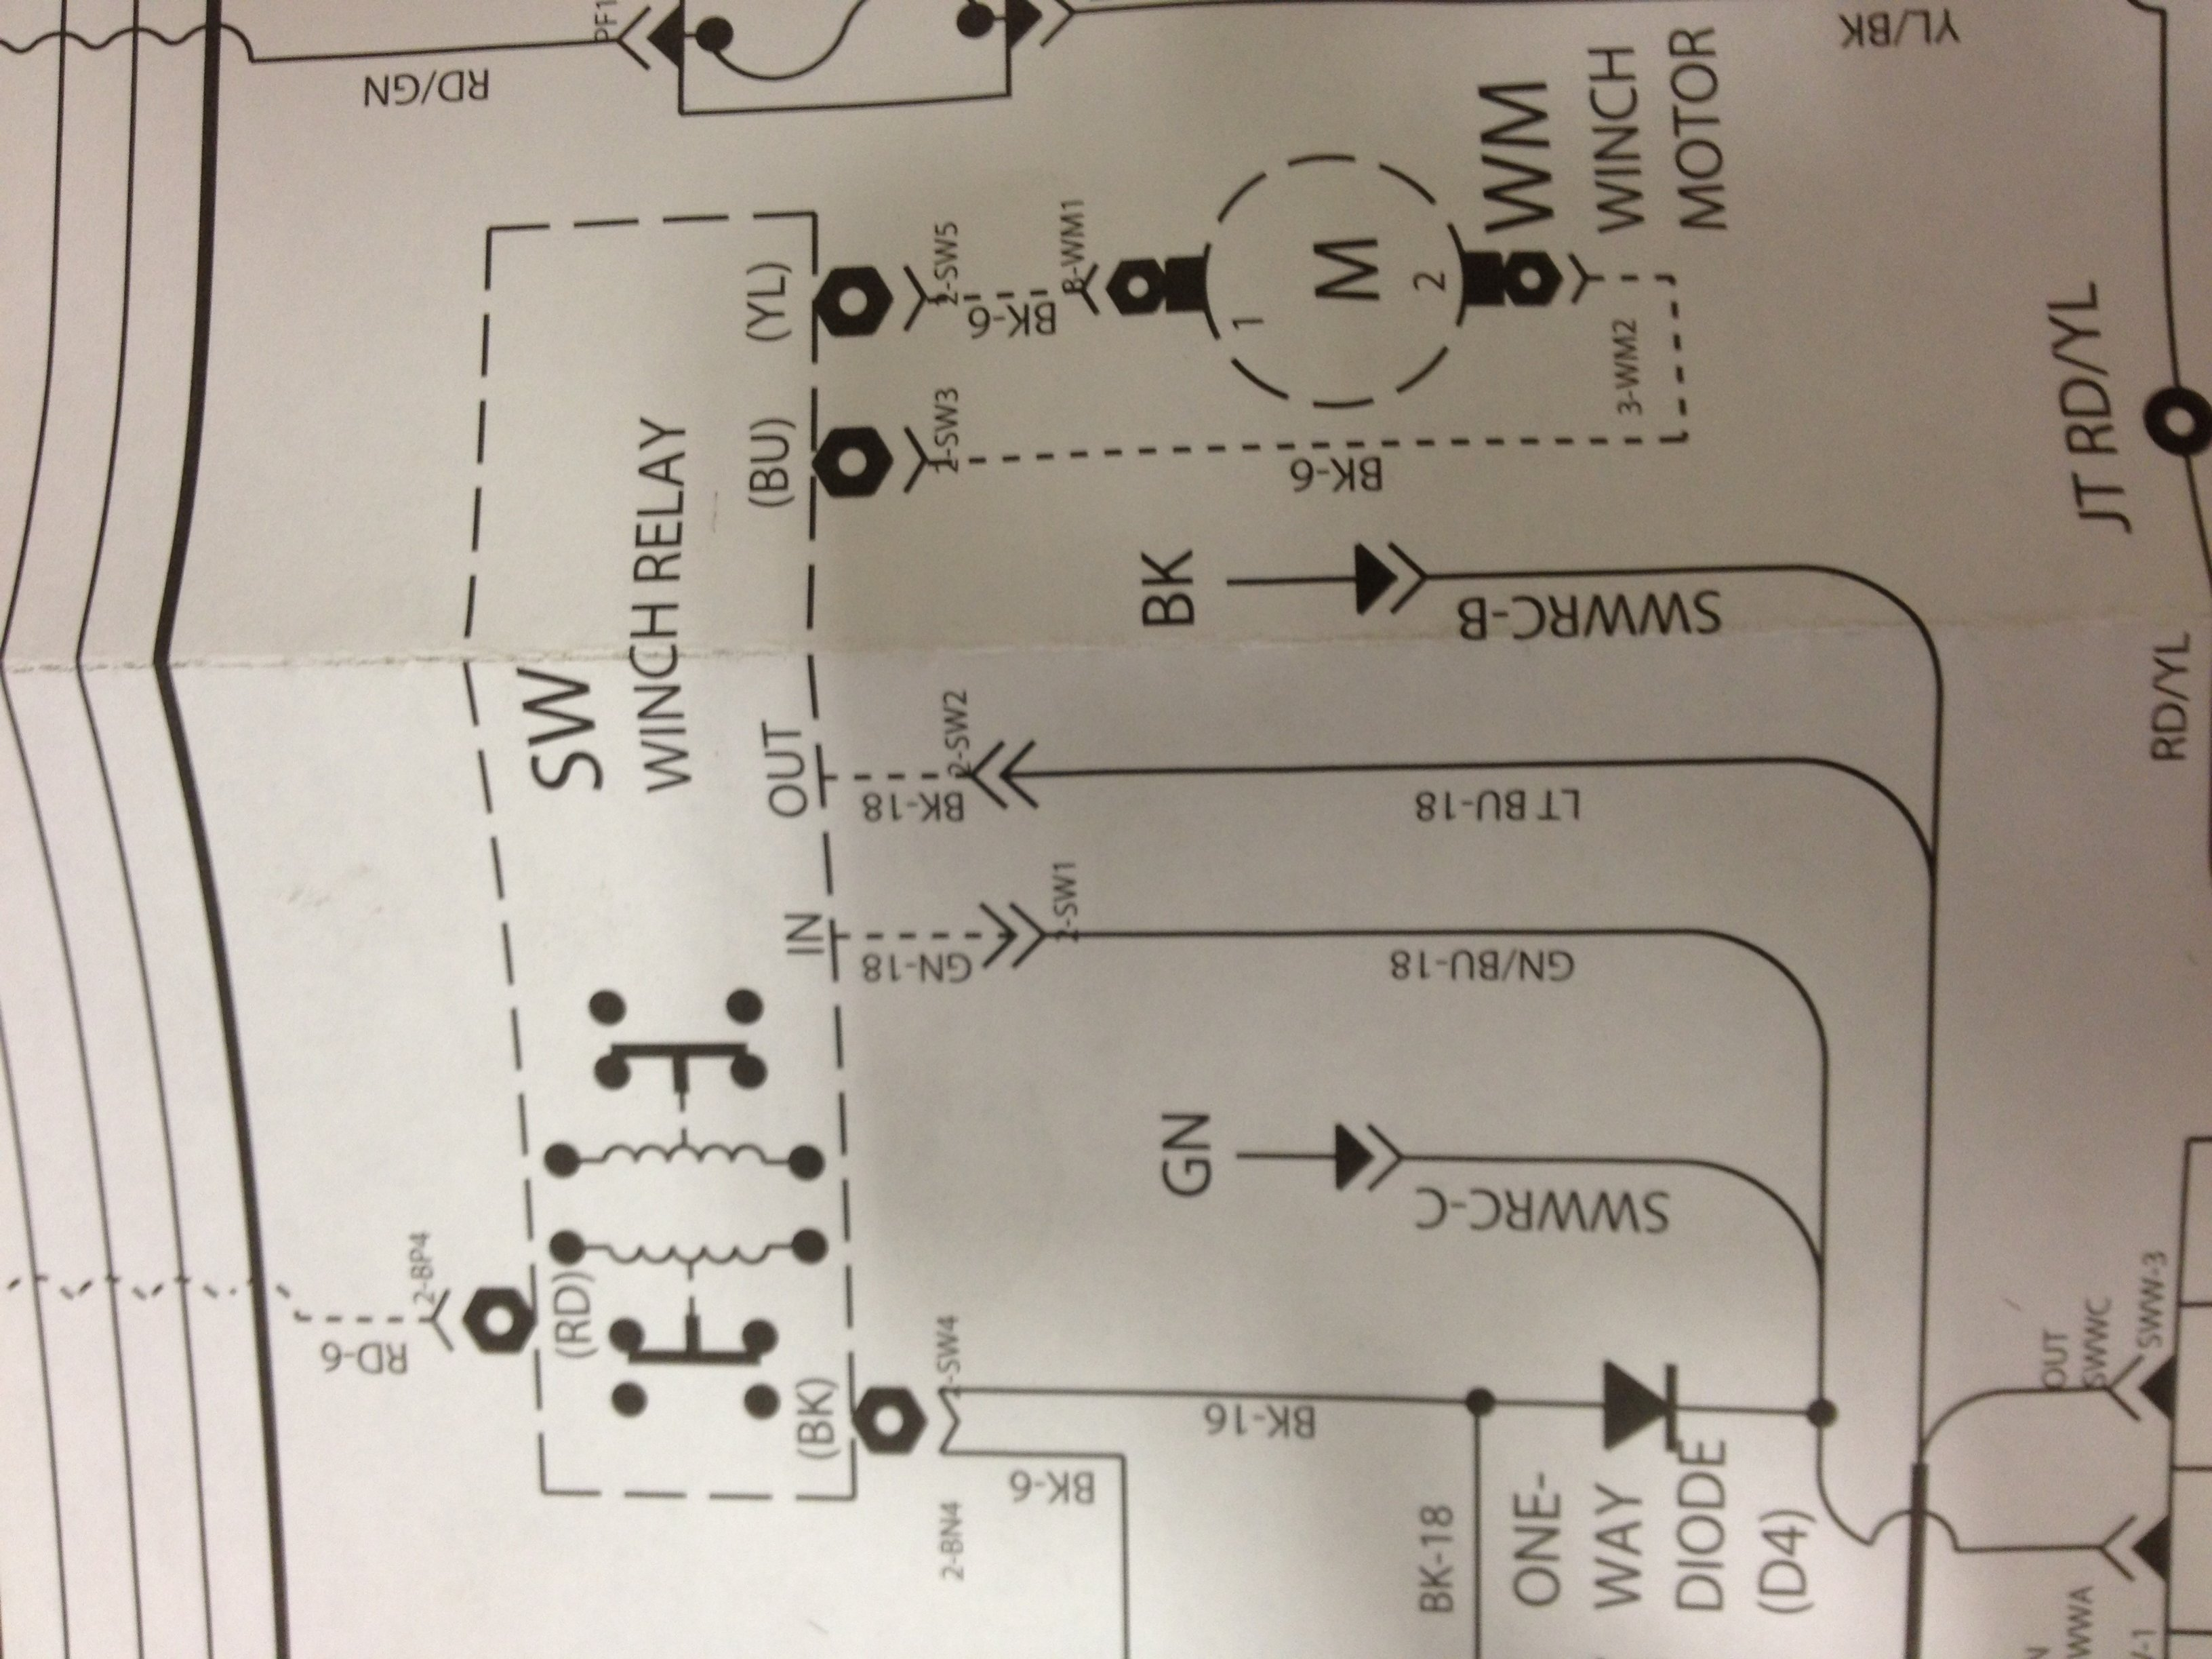 Rock Winch Wiring Diagram Manual Of Need A Schematic On Warn M8000 Quick Answer For Install Rh Maverickforums Net